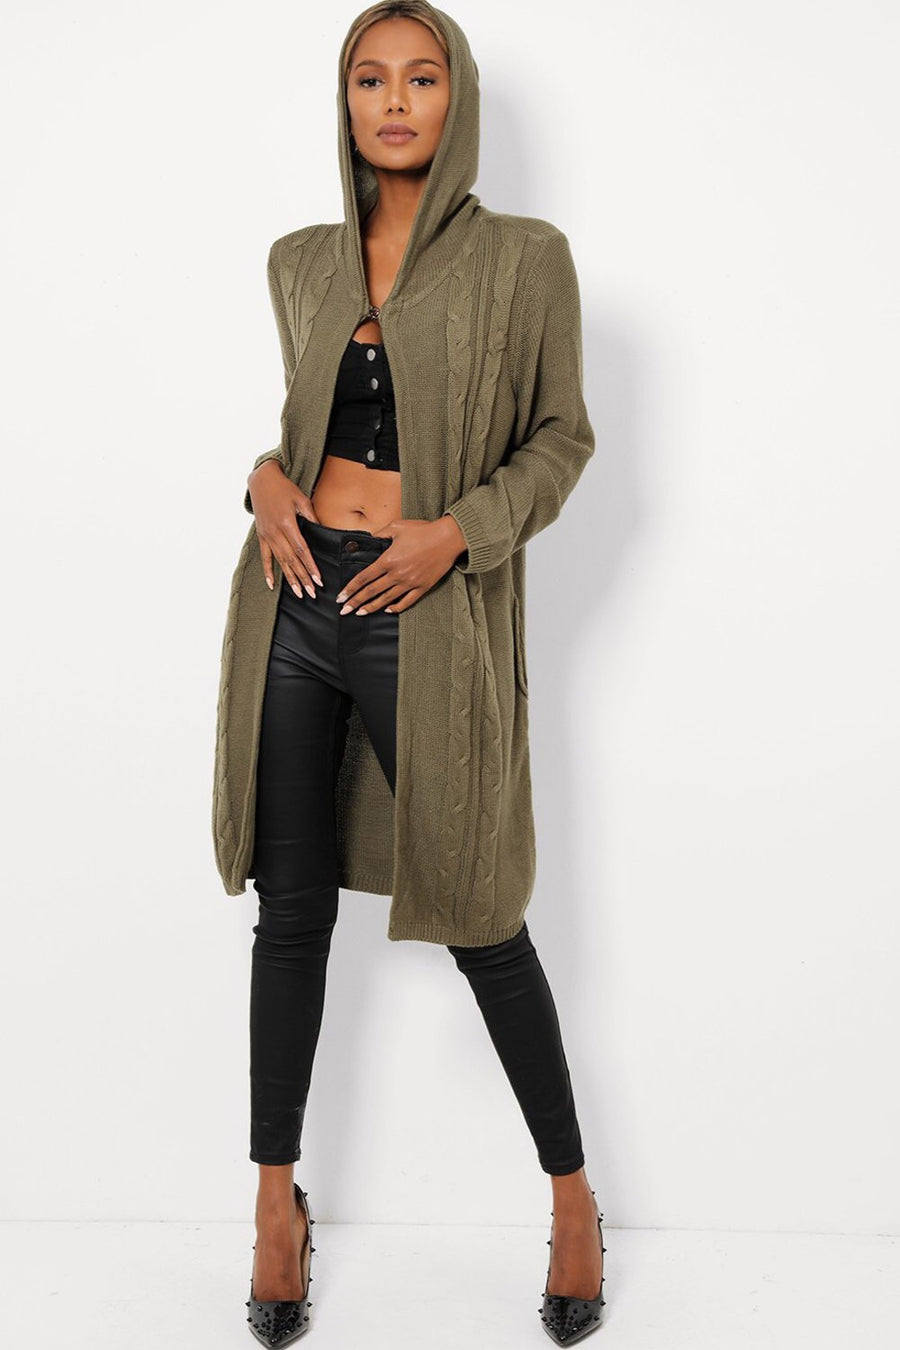 'Chloe' khaki long cable knit hooded cardigan